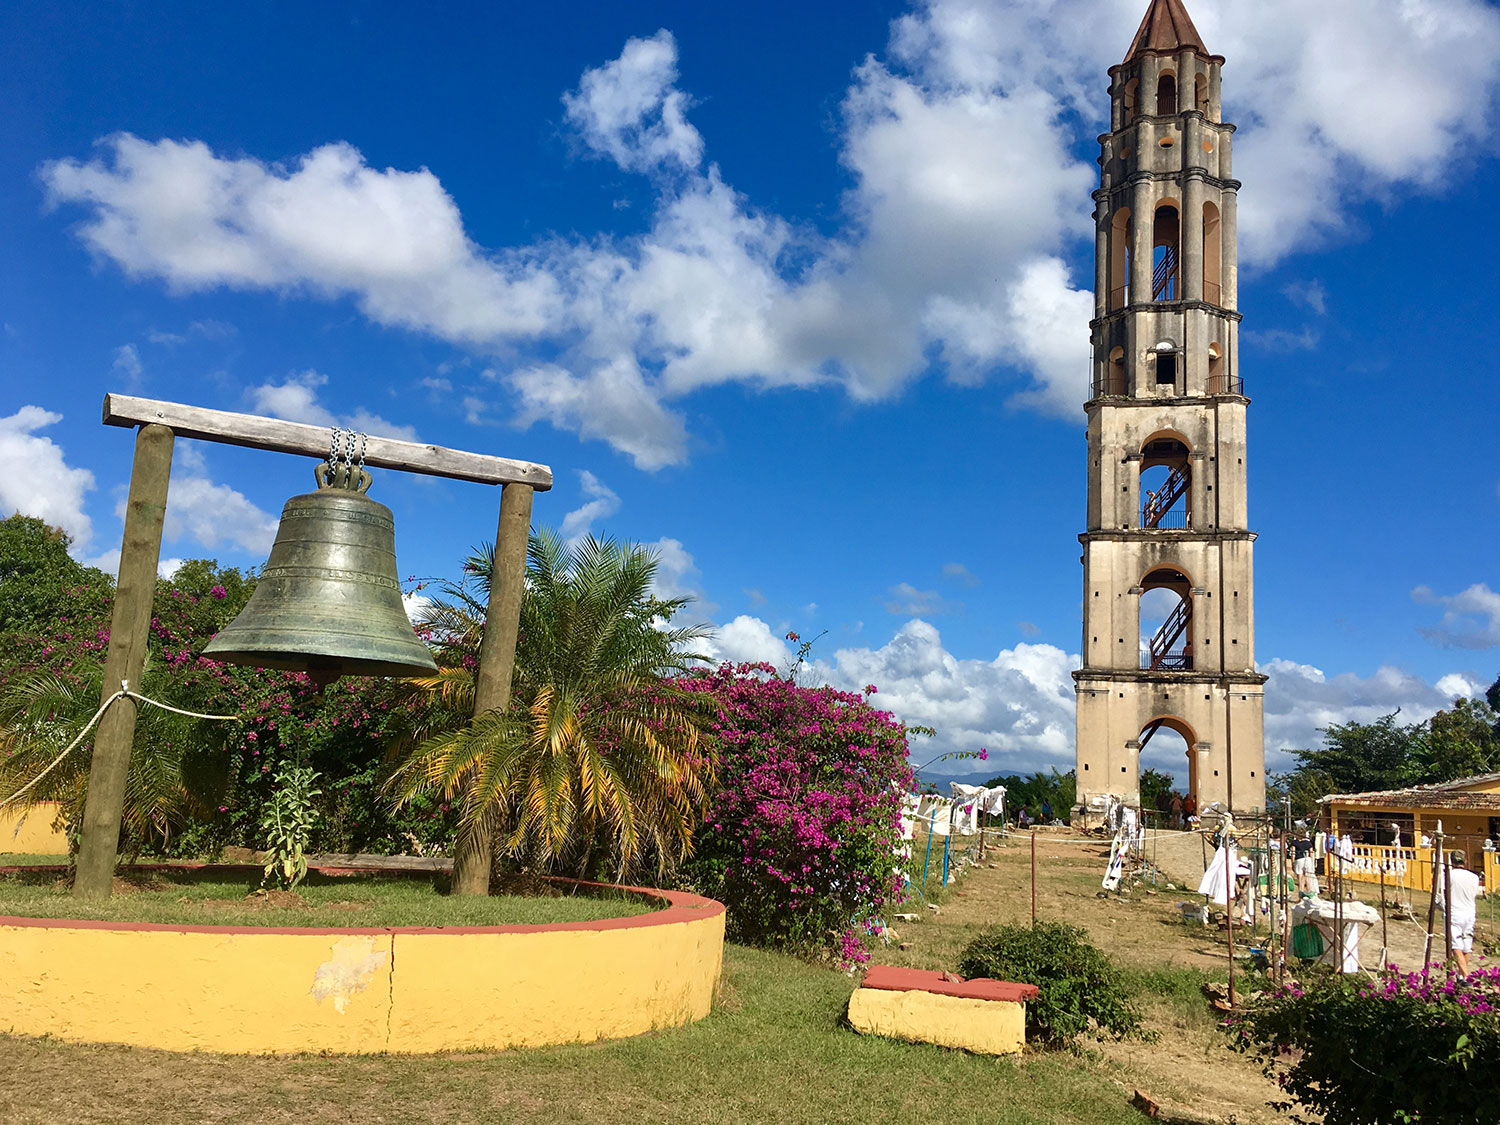 The tower and the bell, once used on top of the tower.